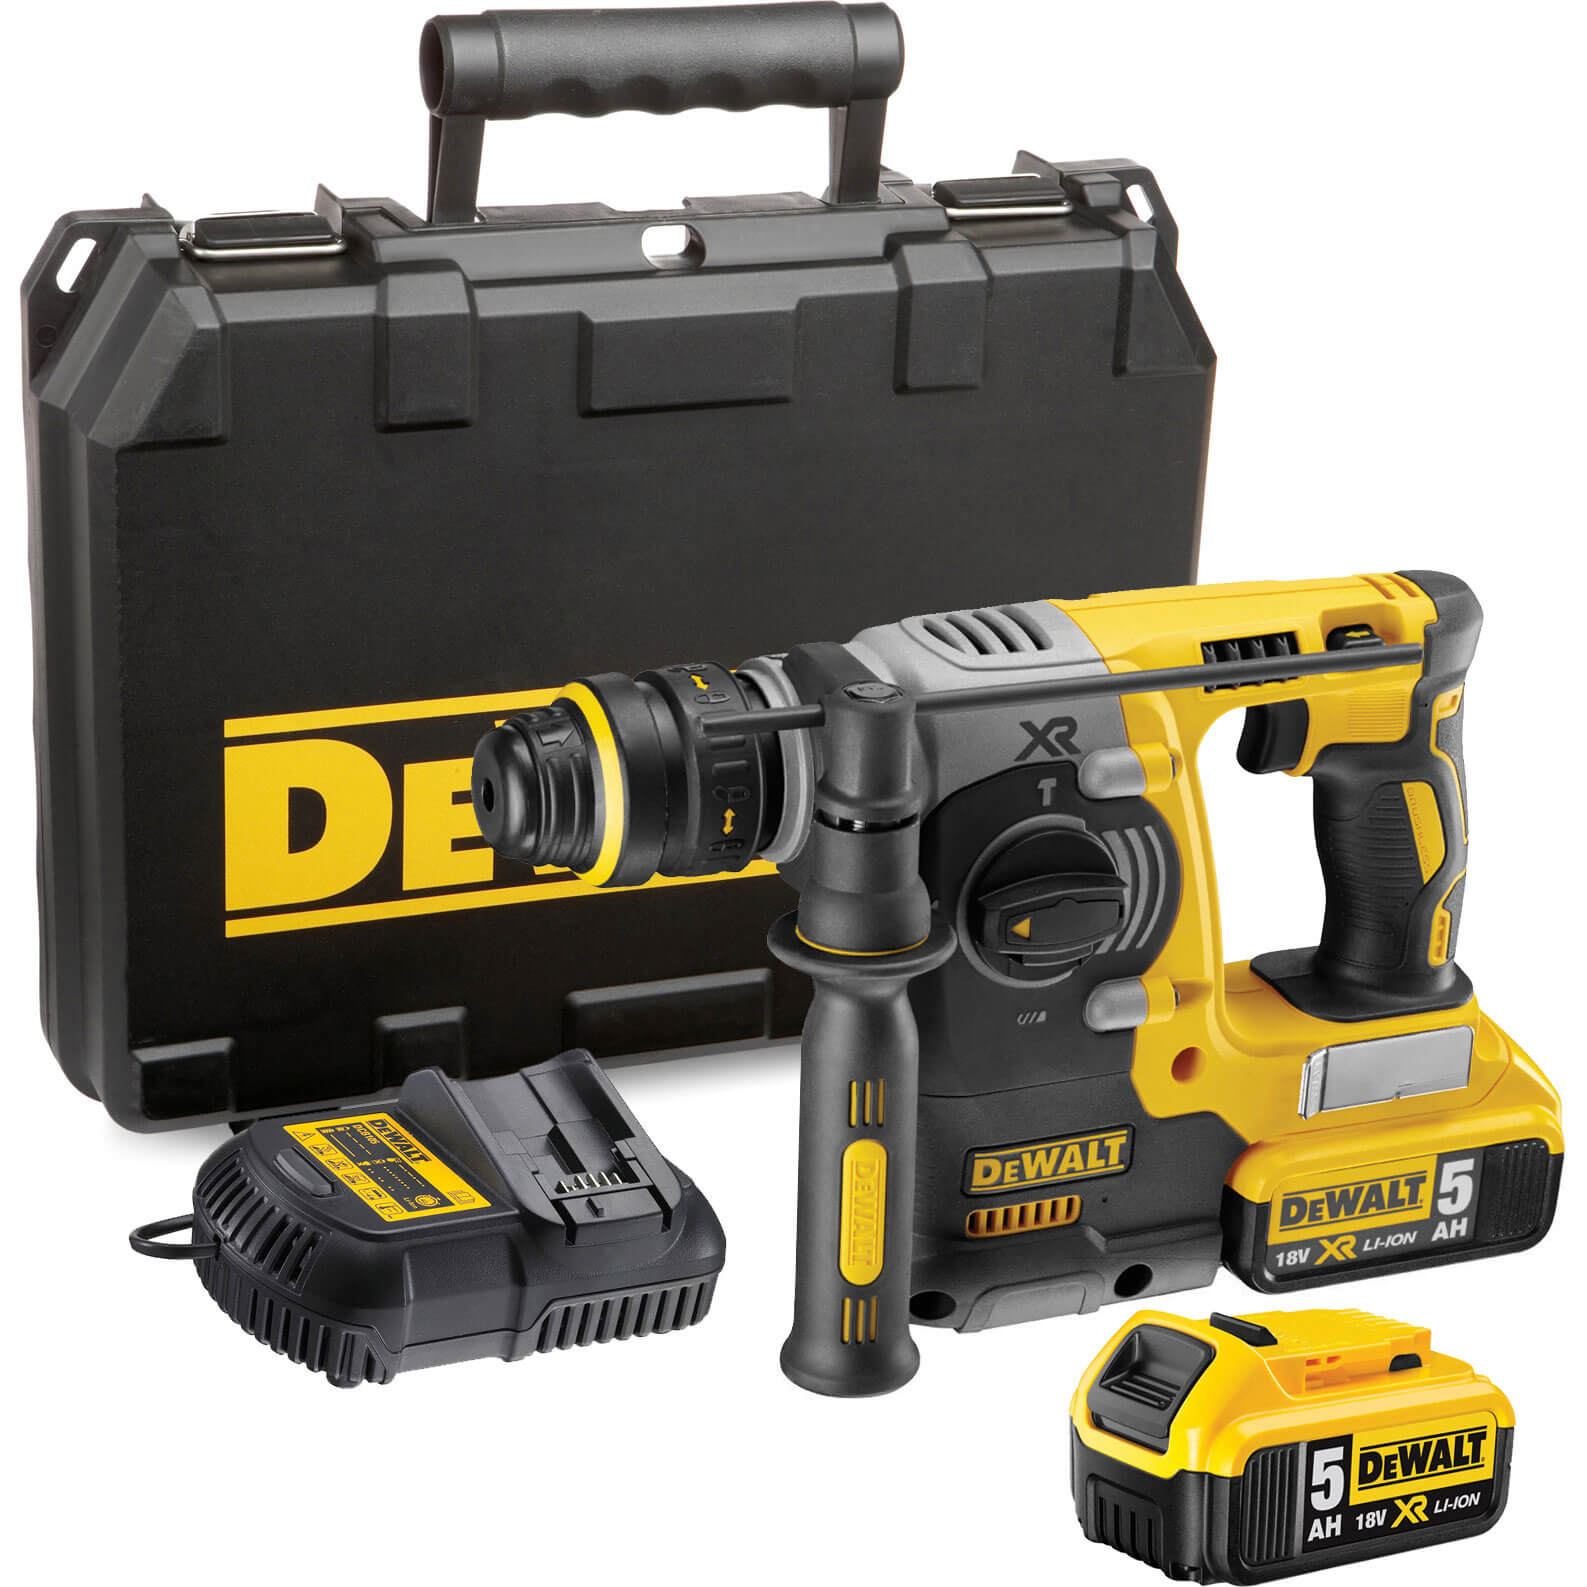 DeWalt DCH273P2 18v Cordless Brushless XR Rotary SDS Hammer Drill with 2 Liion Batteries 5ah